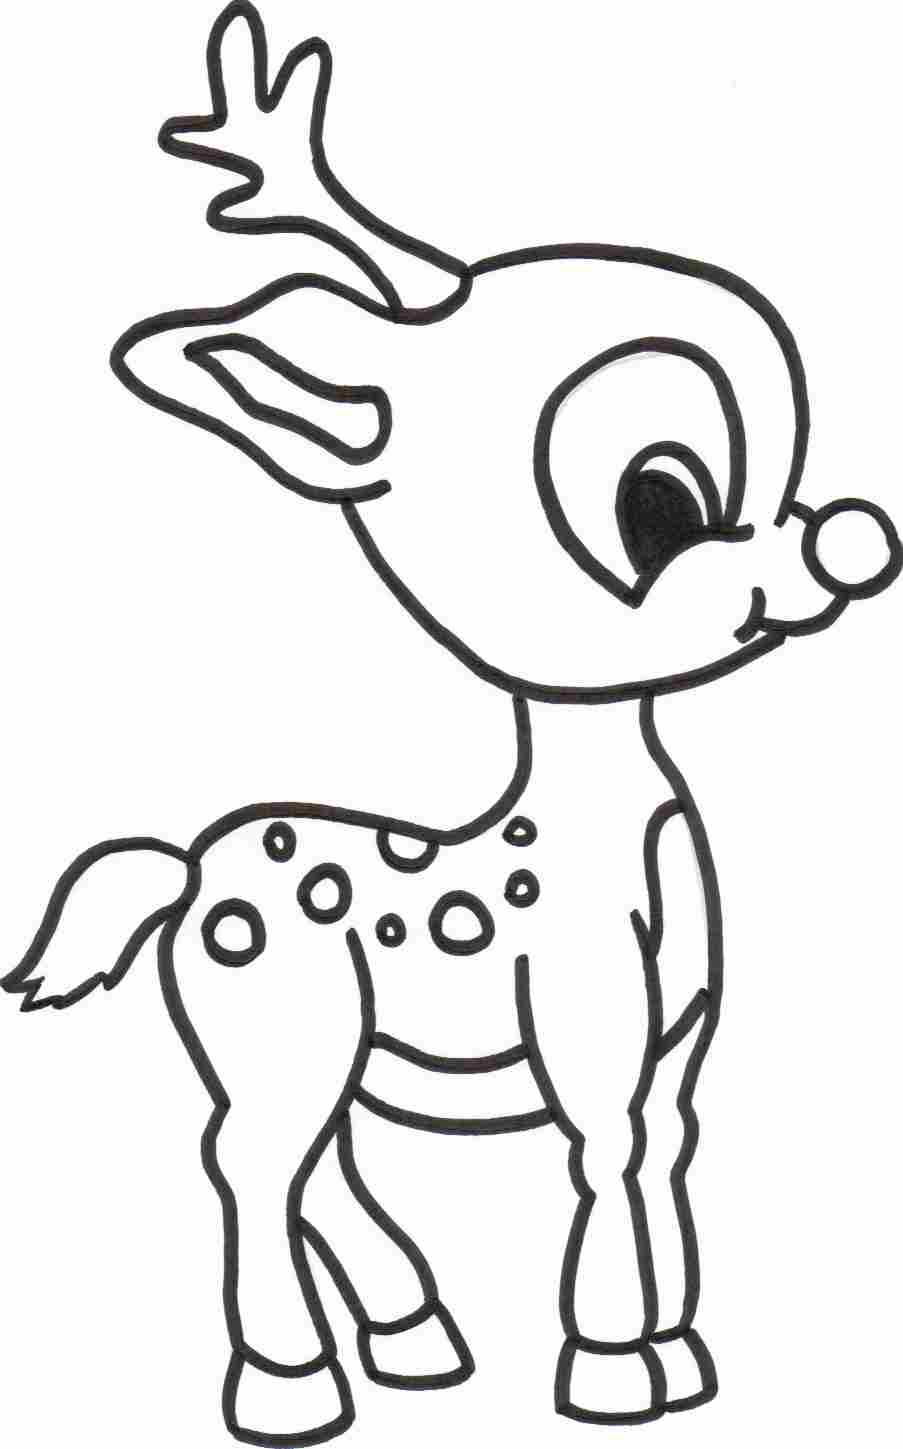 free printable reindeer coloring pages spotted racer deer coloring pages 33 pictures and cliparts free reindeer coloring pages printable